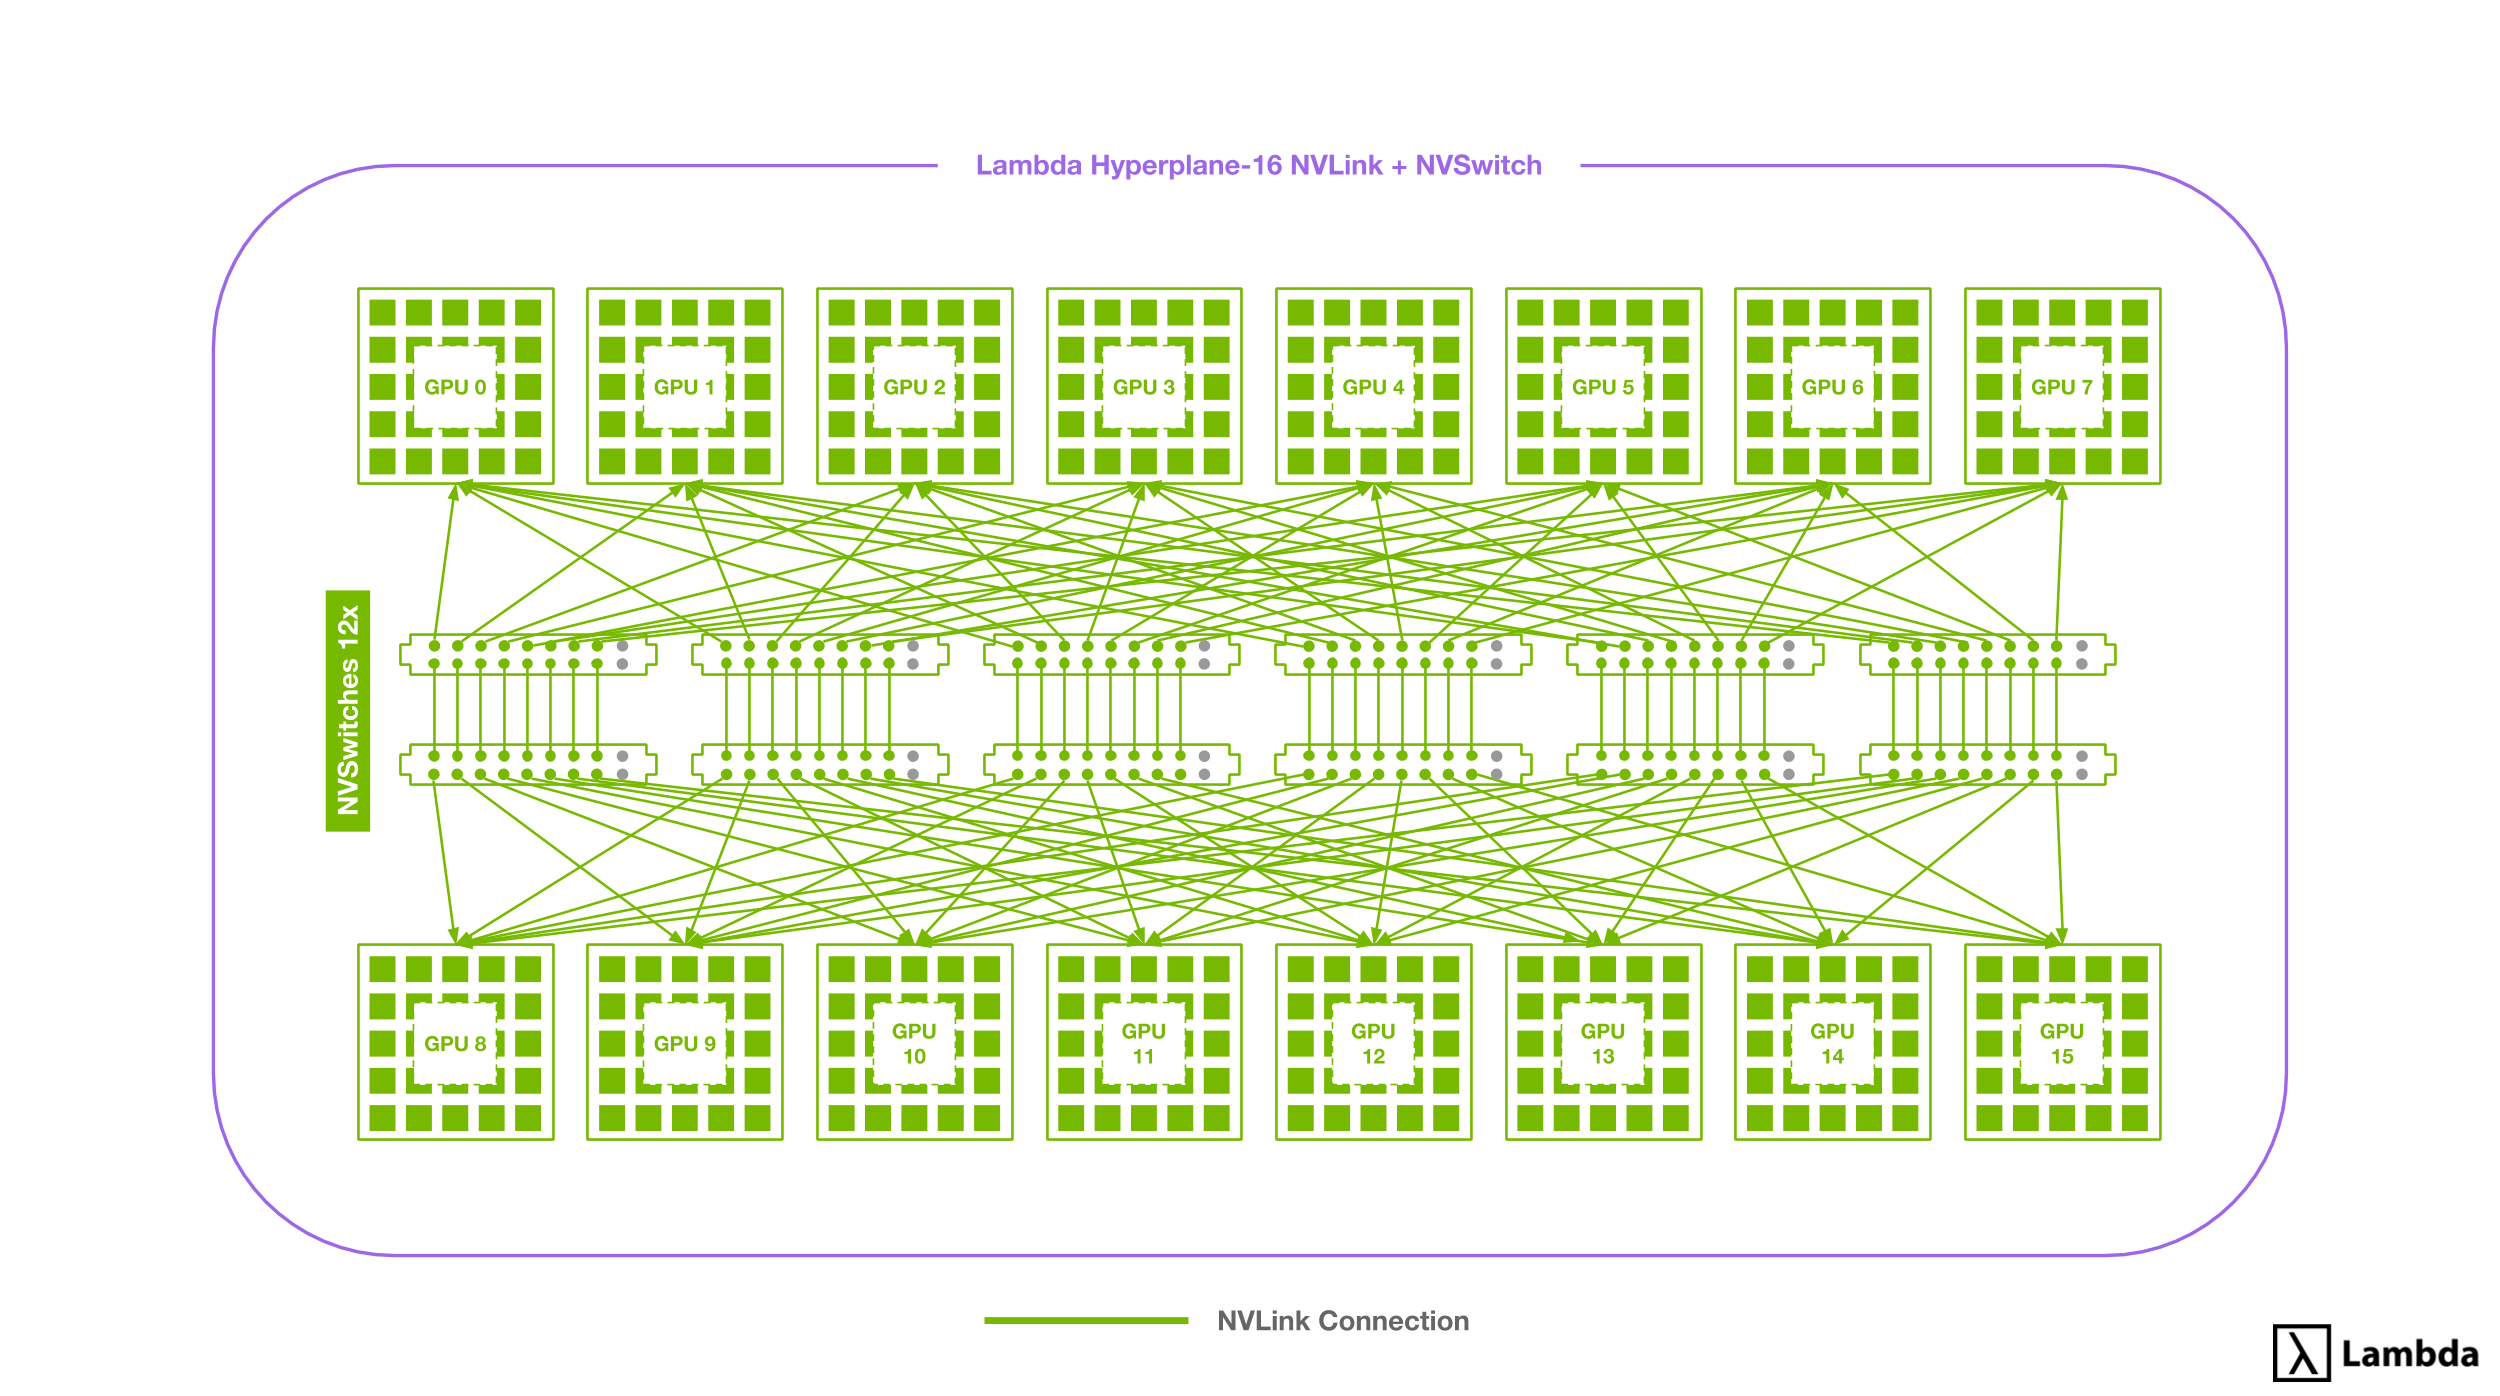 Diagram of 16-way NVLink setup using NVSwitches found in the Hyperplane-16.